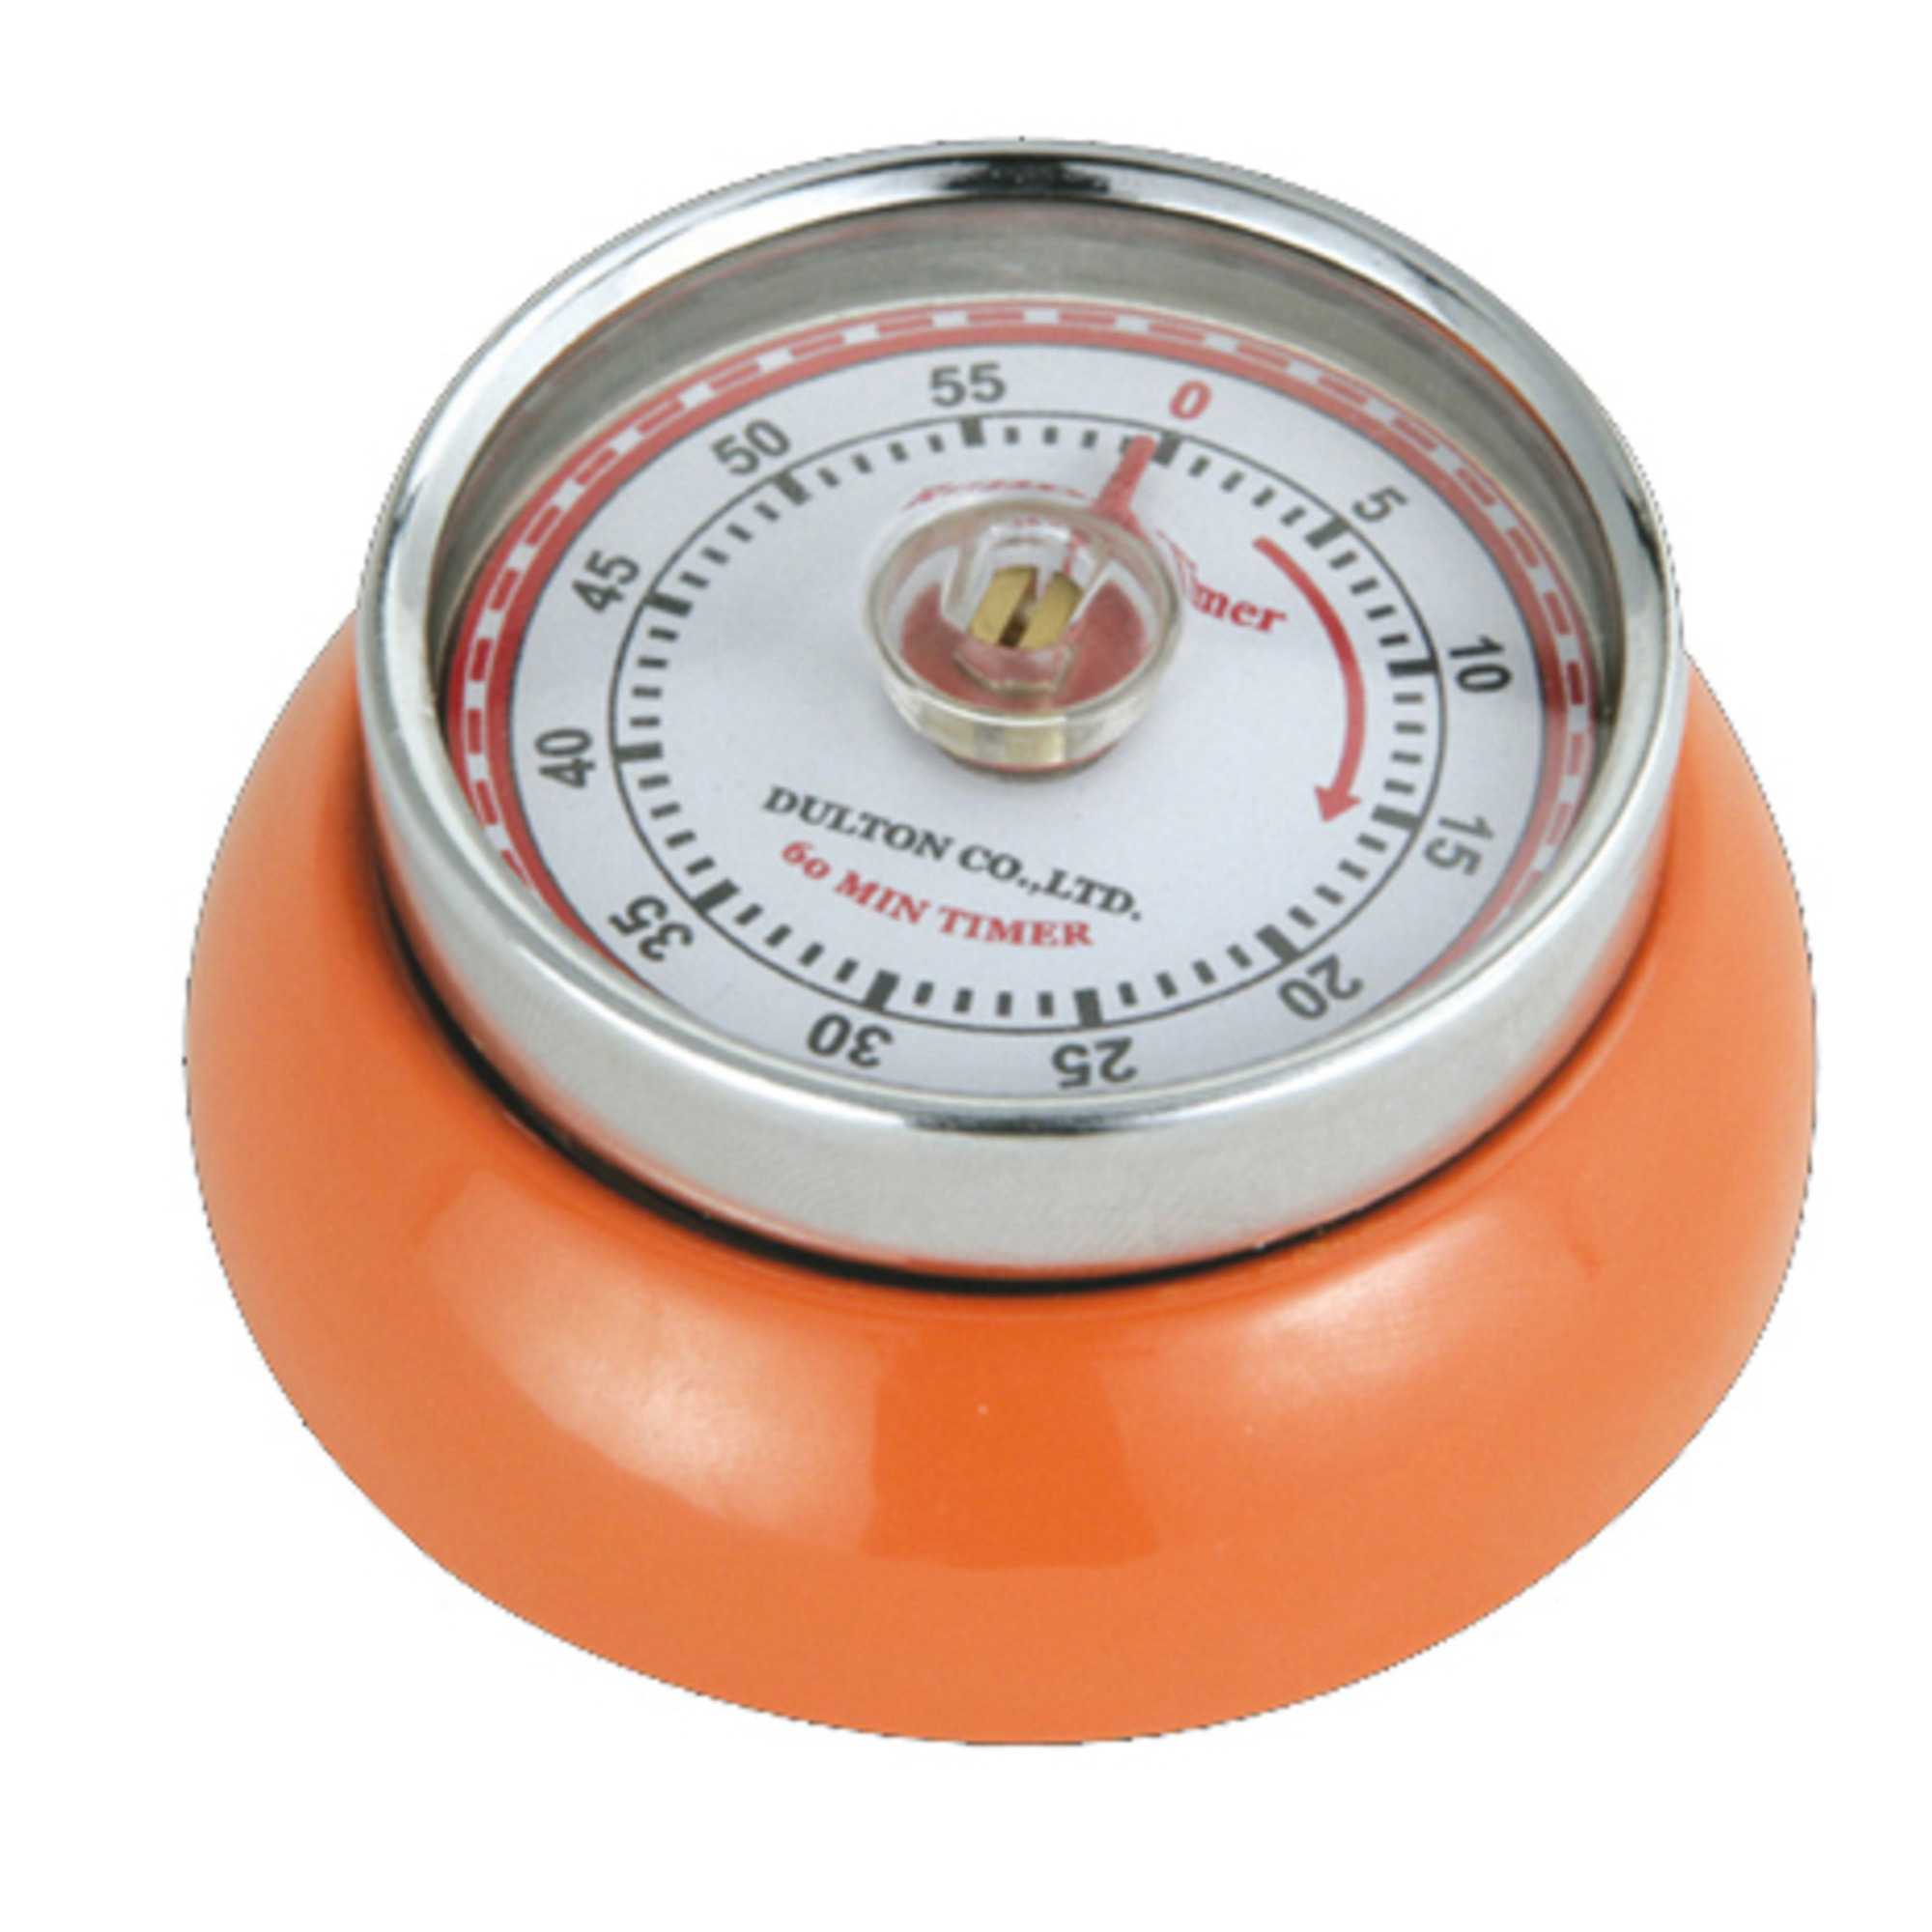 Zassenhaus Timer Orange